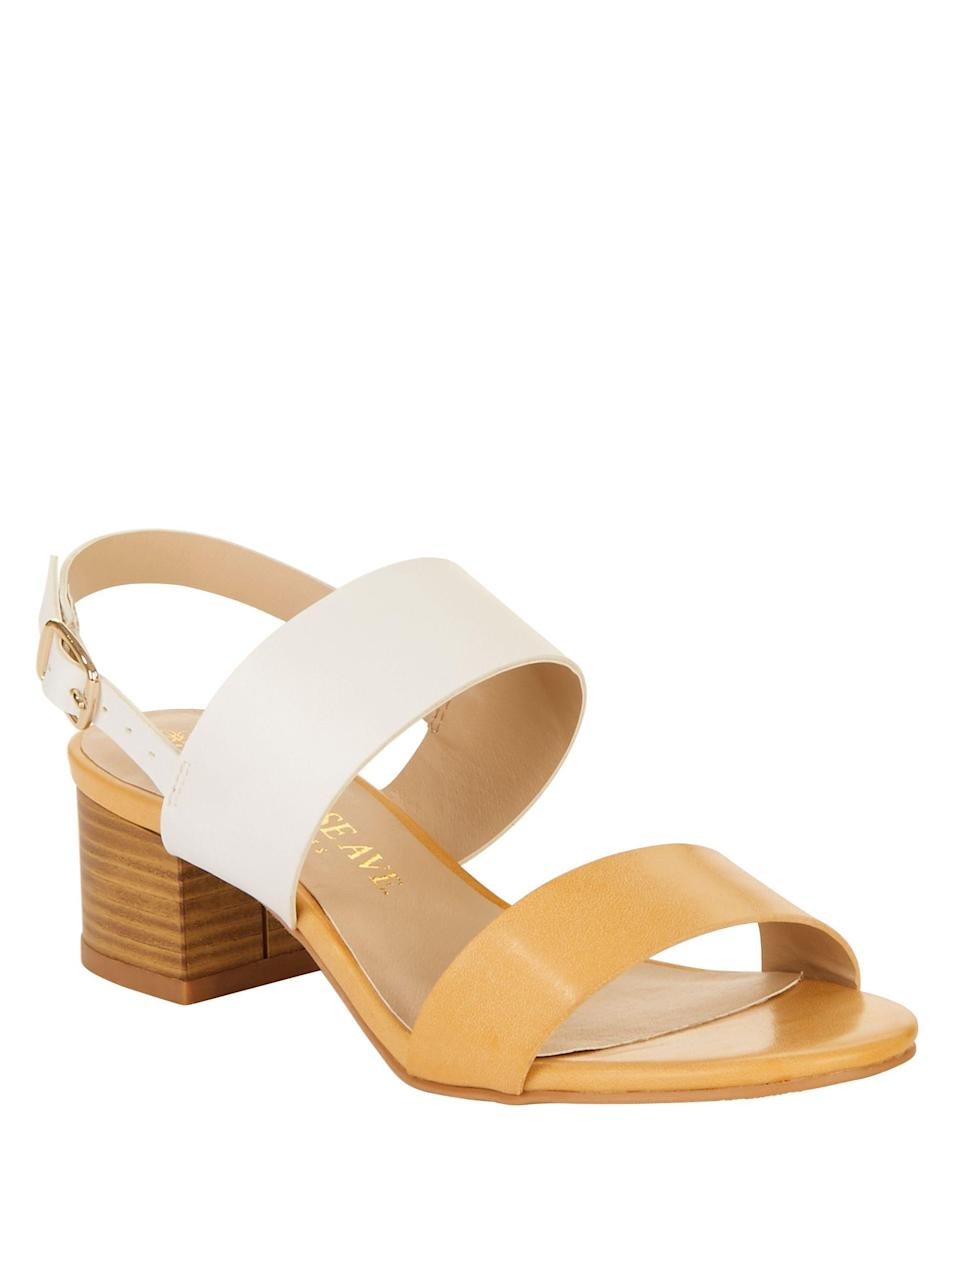 "<h3>Block-Heeled Sandals</h3><p>We love the tonal hues of these block-heeled sandals — they're definitely walking us to work with us this summer <em>and</em> getting packed for all the destinations weddings.</p><br><br><strong>Melrose Ave</strong> Next Time Vegan Heeled Sandal, $21.95, available at <a href=""https://www.walmart.com/ip/Melrose-Ave-Women-s-Next-Time-Vegan-Heeled-Sandal/668328034"" rel=""nofollow noopener"" target=""_blank"" data-ylk=""slk:Walmart"" class=""link rapid-noclick-resp"">Walmart</a>"